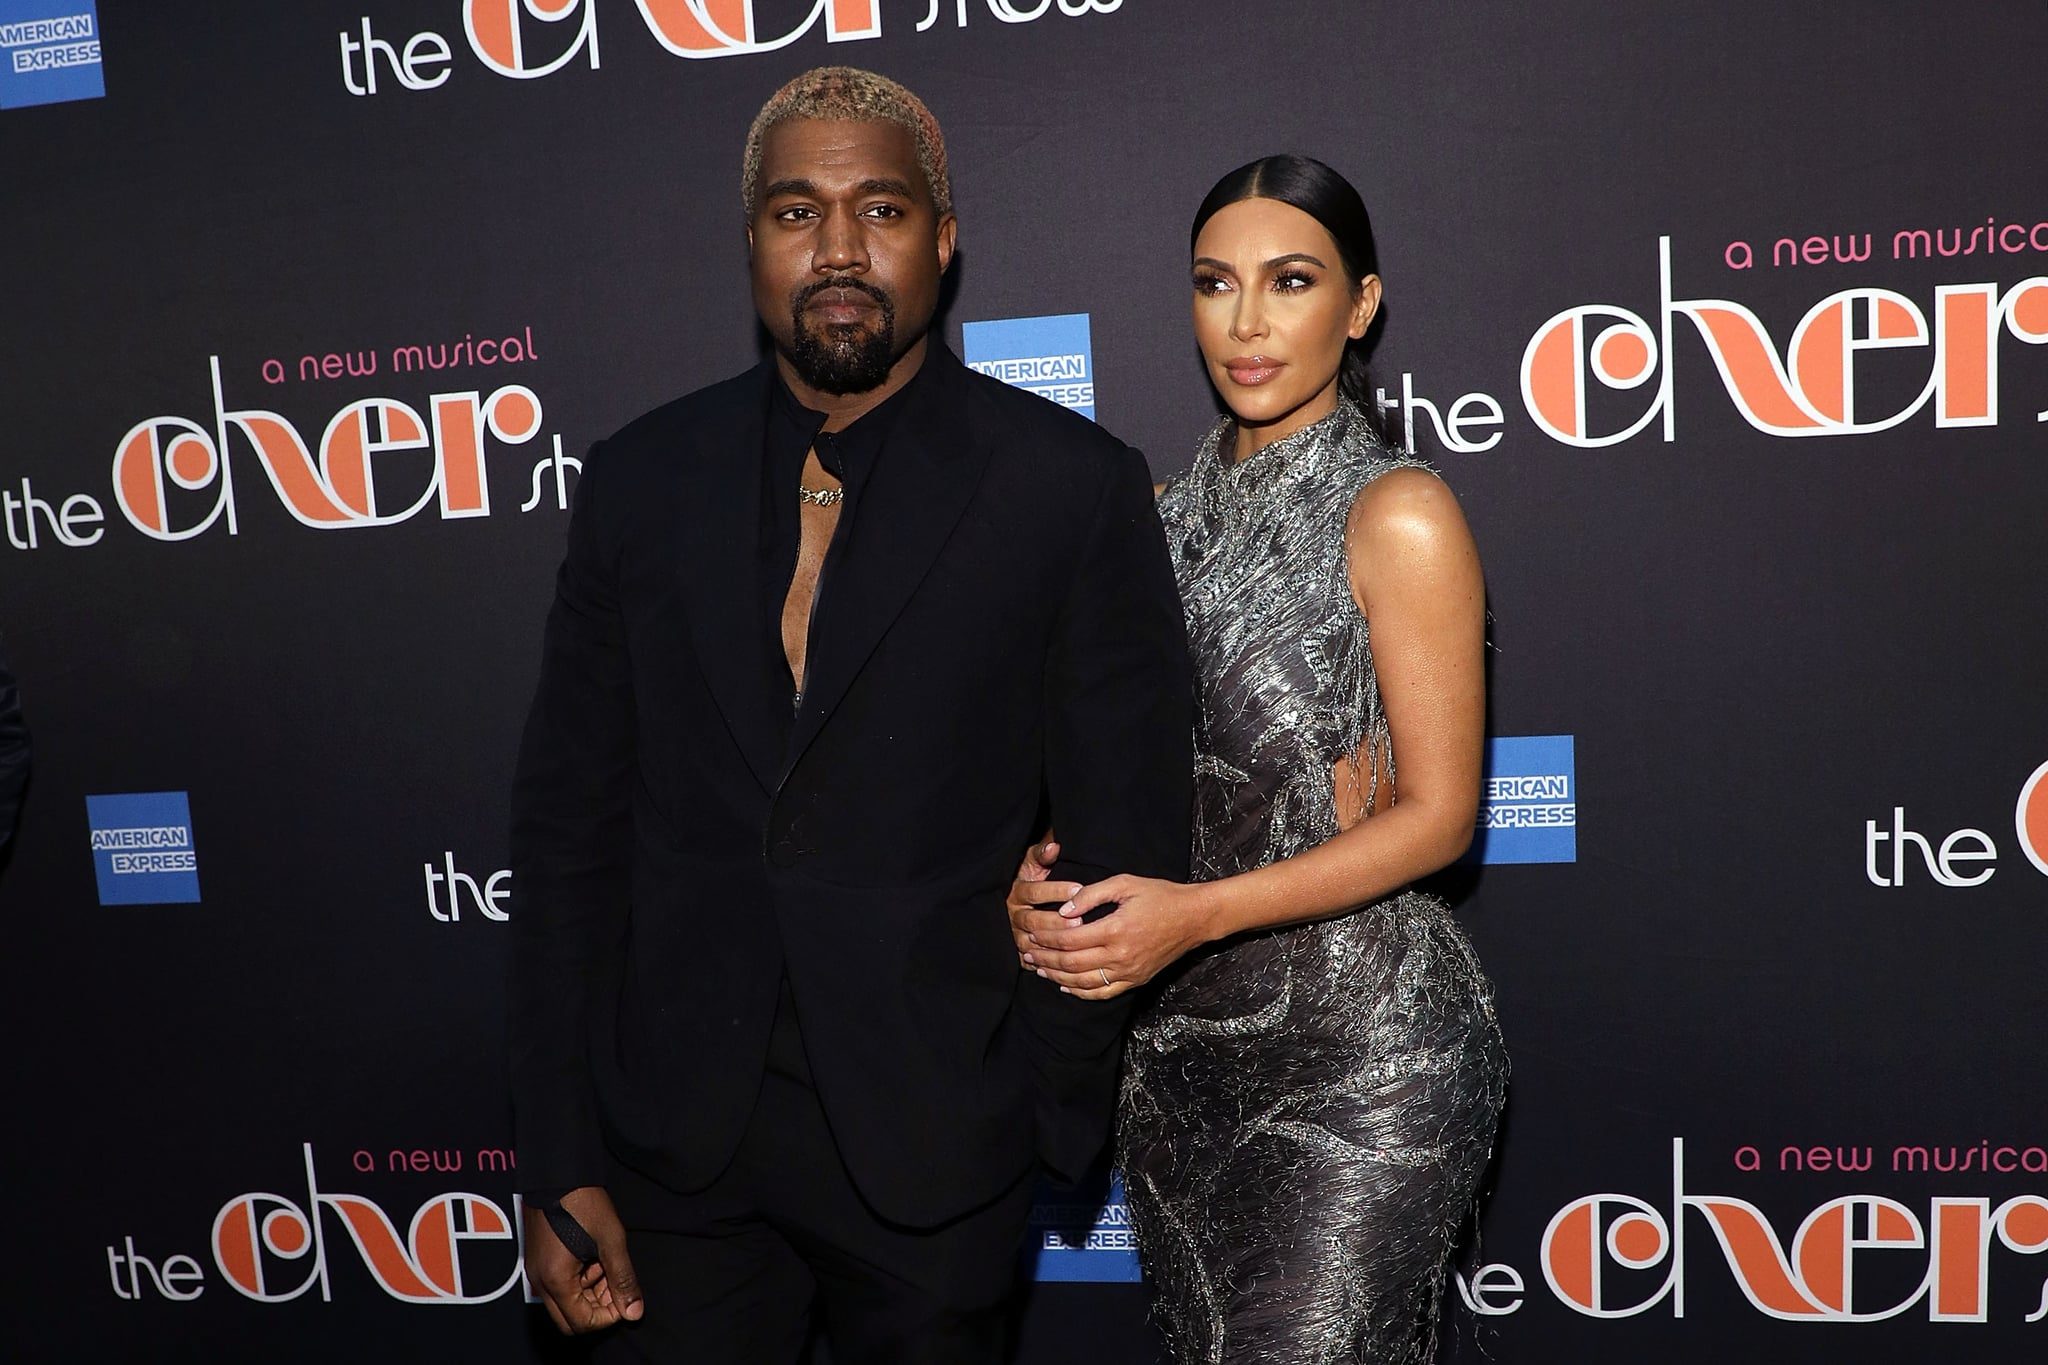 NEW YORK, NY - DECEMBER 03:  Kanye West and Kim Kardashian West attend opening night of